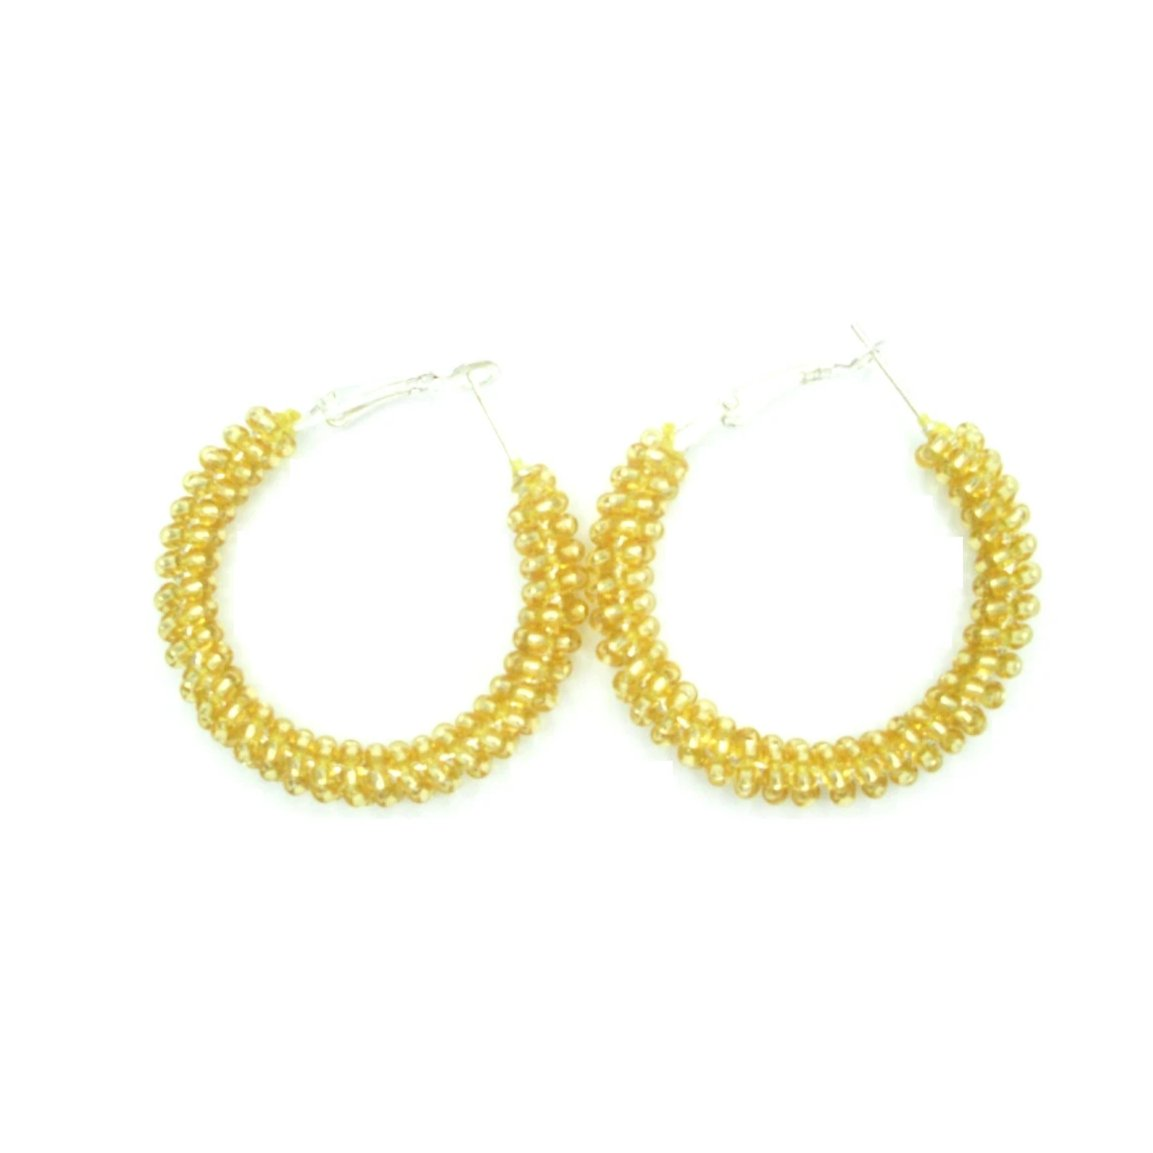 Lola Transparent Gold Hoop Earrings